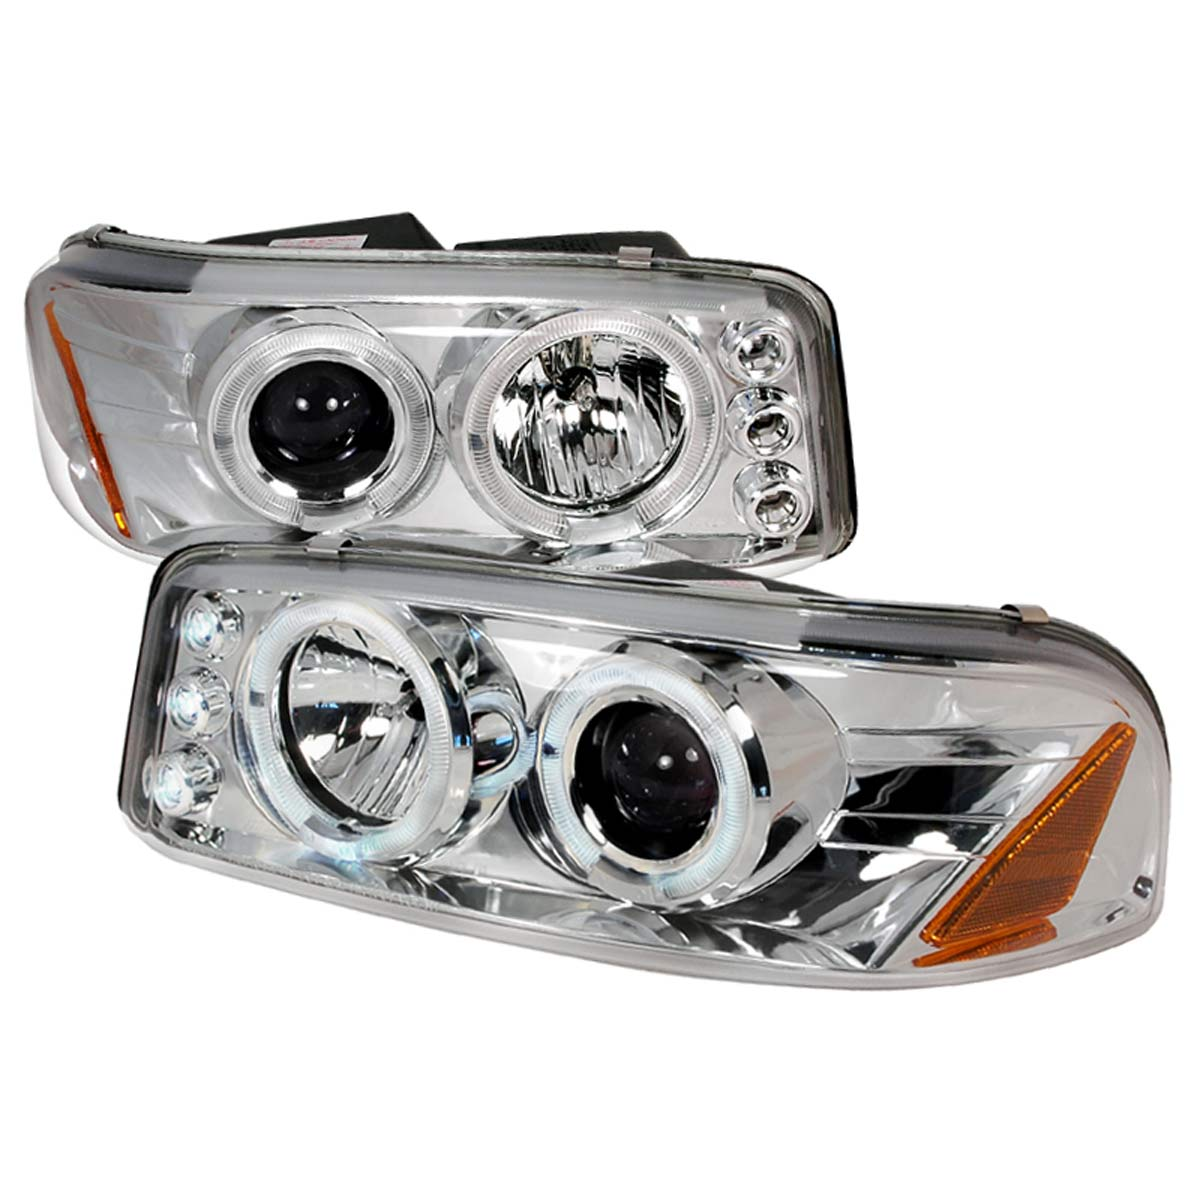 00 06 gmc yukon xl sierra denali angel eye halo led projector headlights chrome